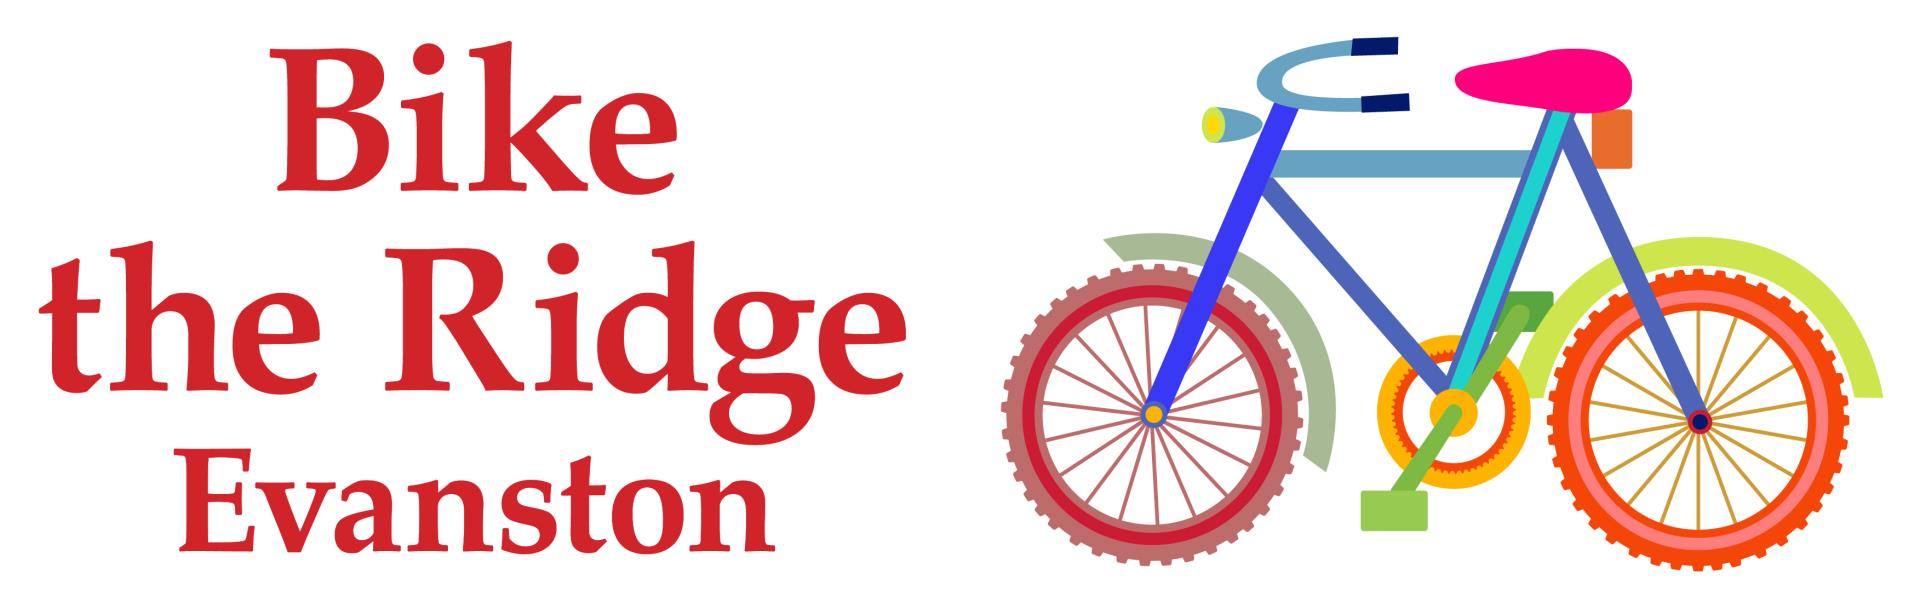 Bike the Ridge bike_logo